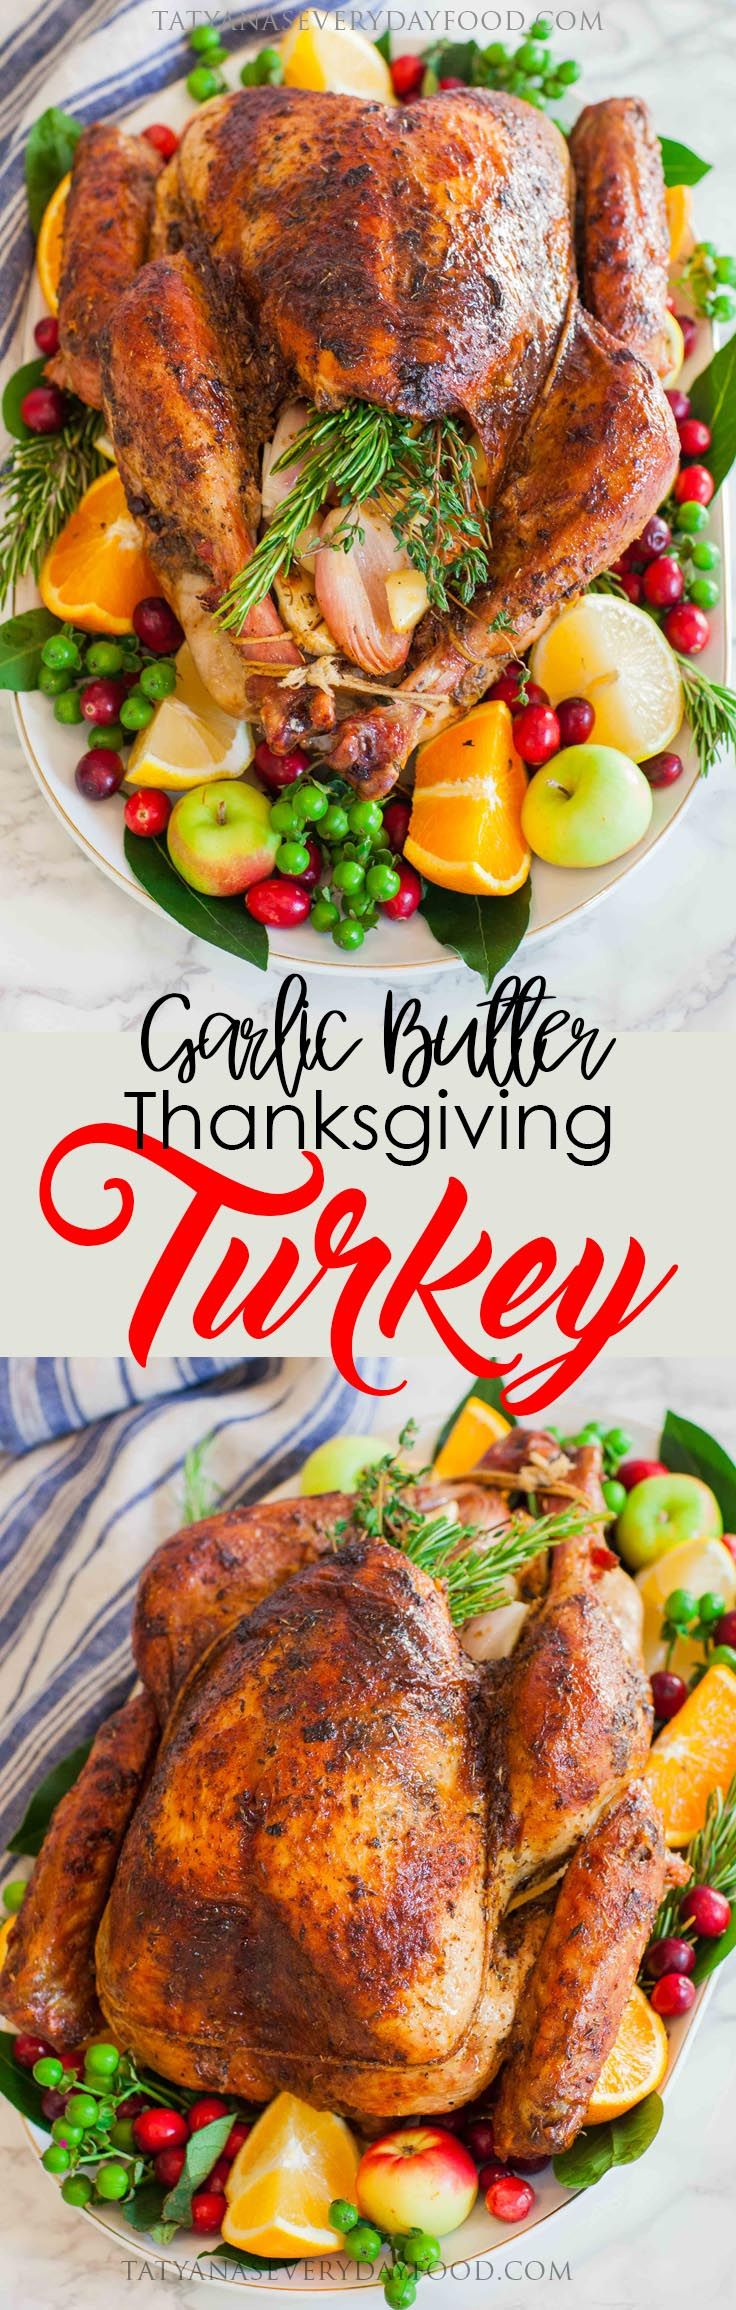 A Thanksgiving or holiday table wouldn't be complete with a big ol' juicy and flavorful turkey at the center! This easy, no-fail Thanksgiving turkey recipe will knock your socks off, and be the best turkey you'll ever serve! The secret to this juicy and aromatic turkey is butter, and lots of it! I season the […]